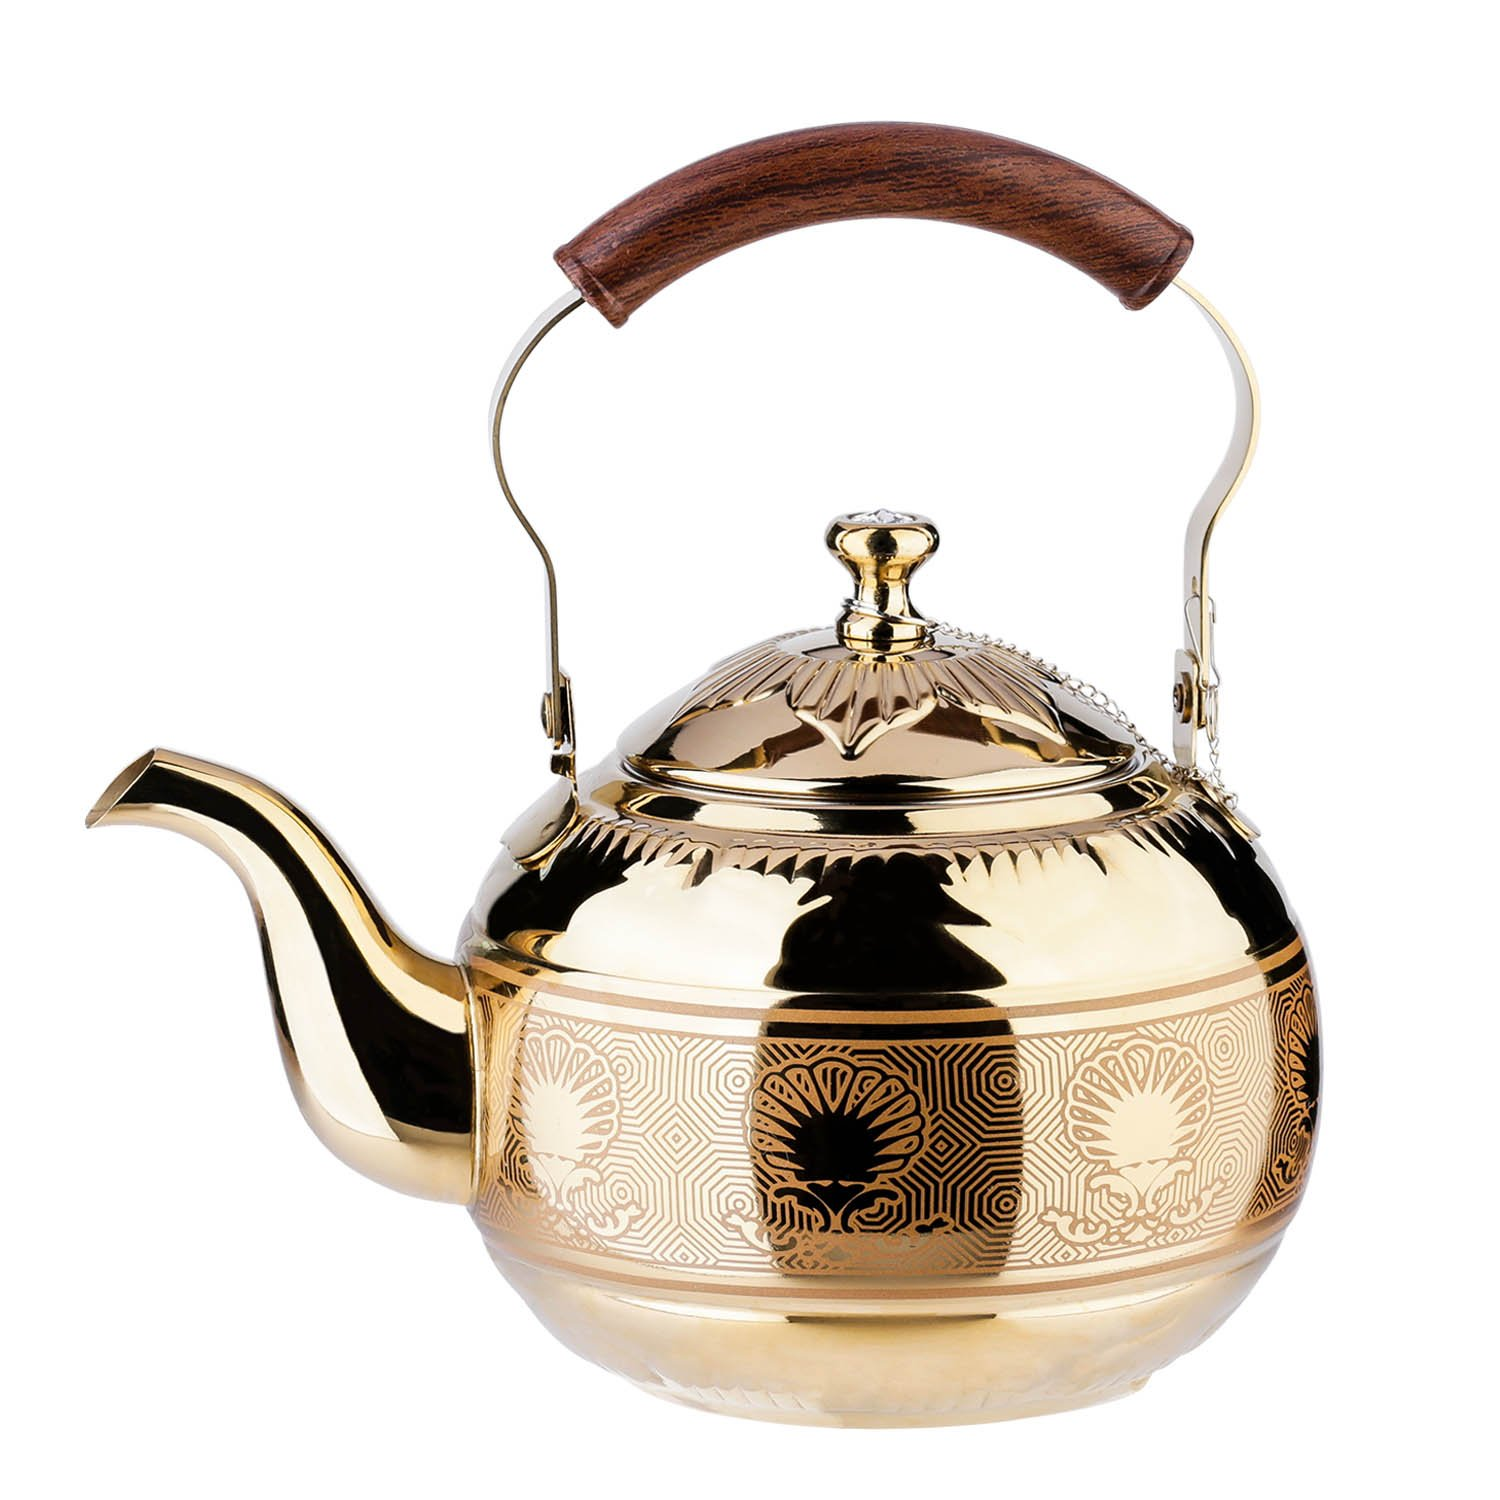 2 Liter Teapot Gold Pot with Infuser for Loose Tea Stainless Steel Coffee Kettle 8 Cup Stovetop Tea Pot Strainer Office Hot Water Mirror Finish 2.1 Quart 68 Ounce by Onlycooker